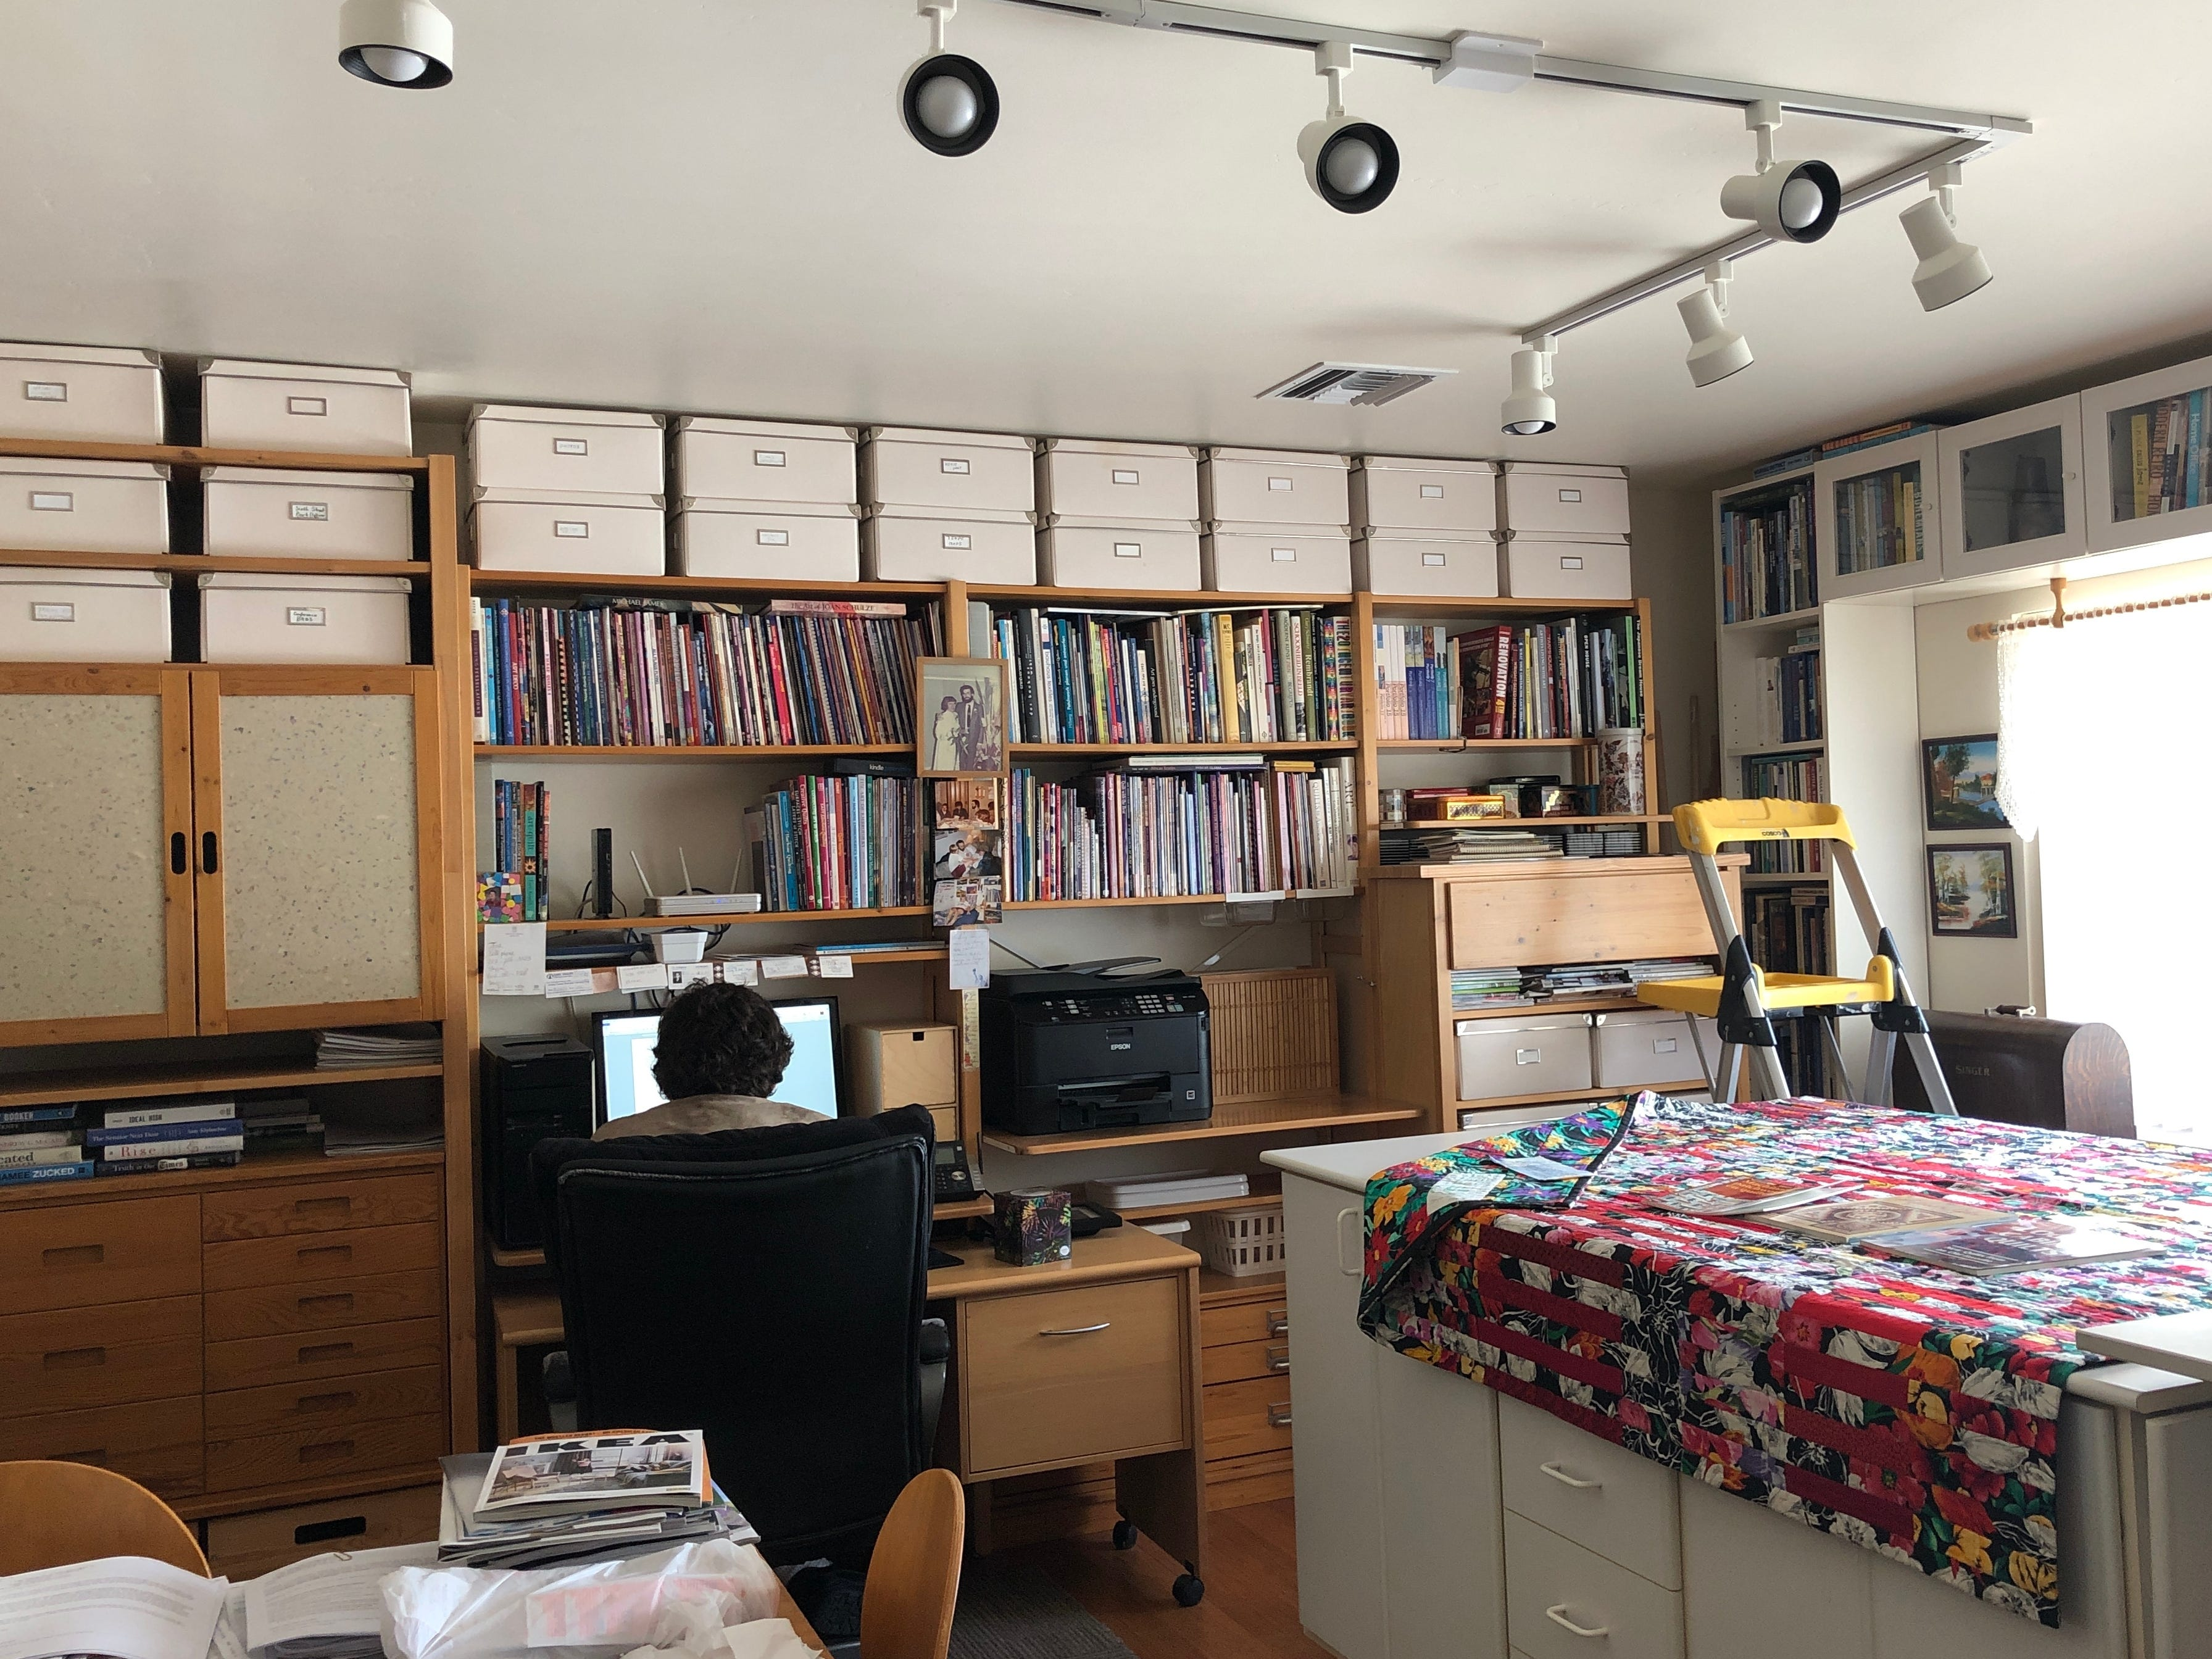 A previous homeowner turned the original garage into a mother-in-law suite with a bathroom and walk-in closet. Meiny Vermaas, a professional artist and quilter, uses it as her workroom and studio, which features LED lighting and north-facing windows for natural light. Her son Theo is working on the computer.